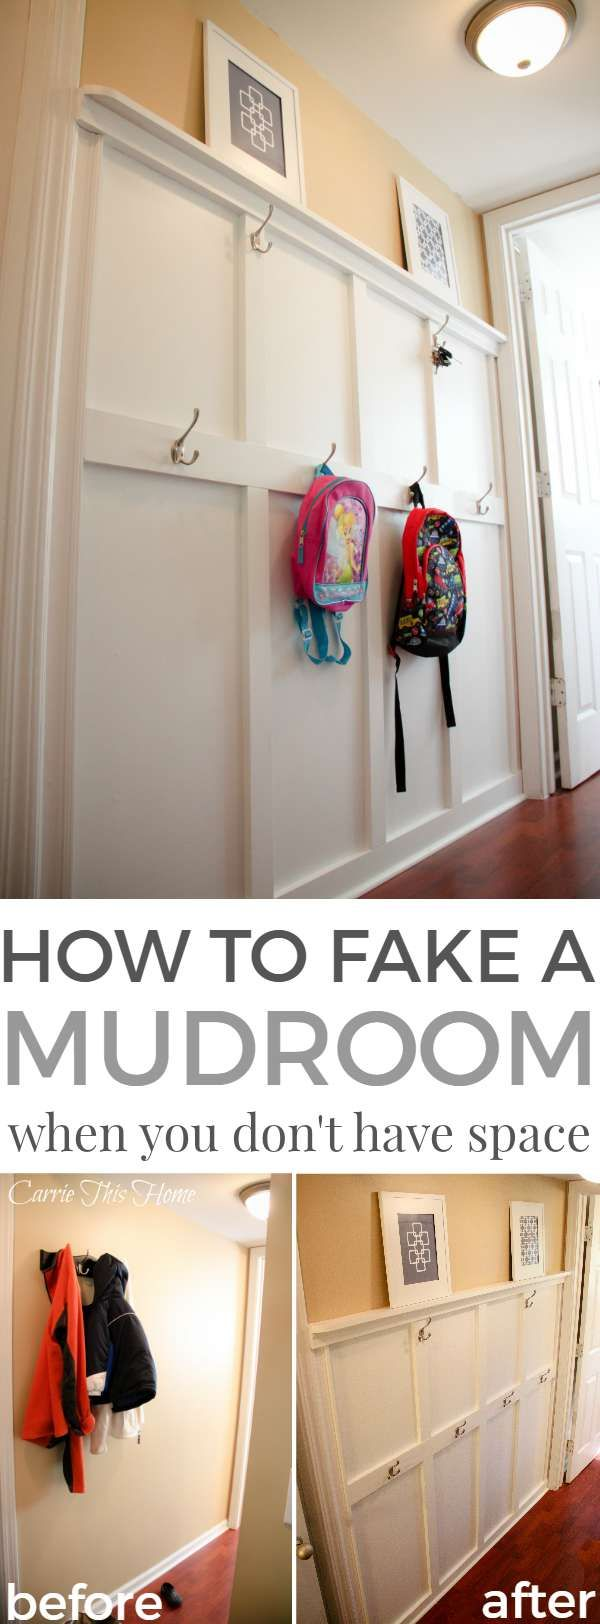 This Is A Must Read If You Re In Need Of Storage Solutions Don T Have Much E Learn How To Take Small Turn It Into Mudroom